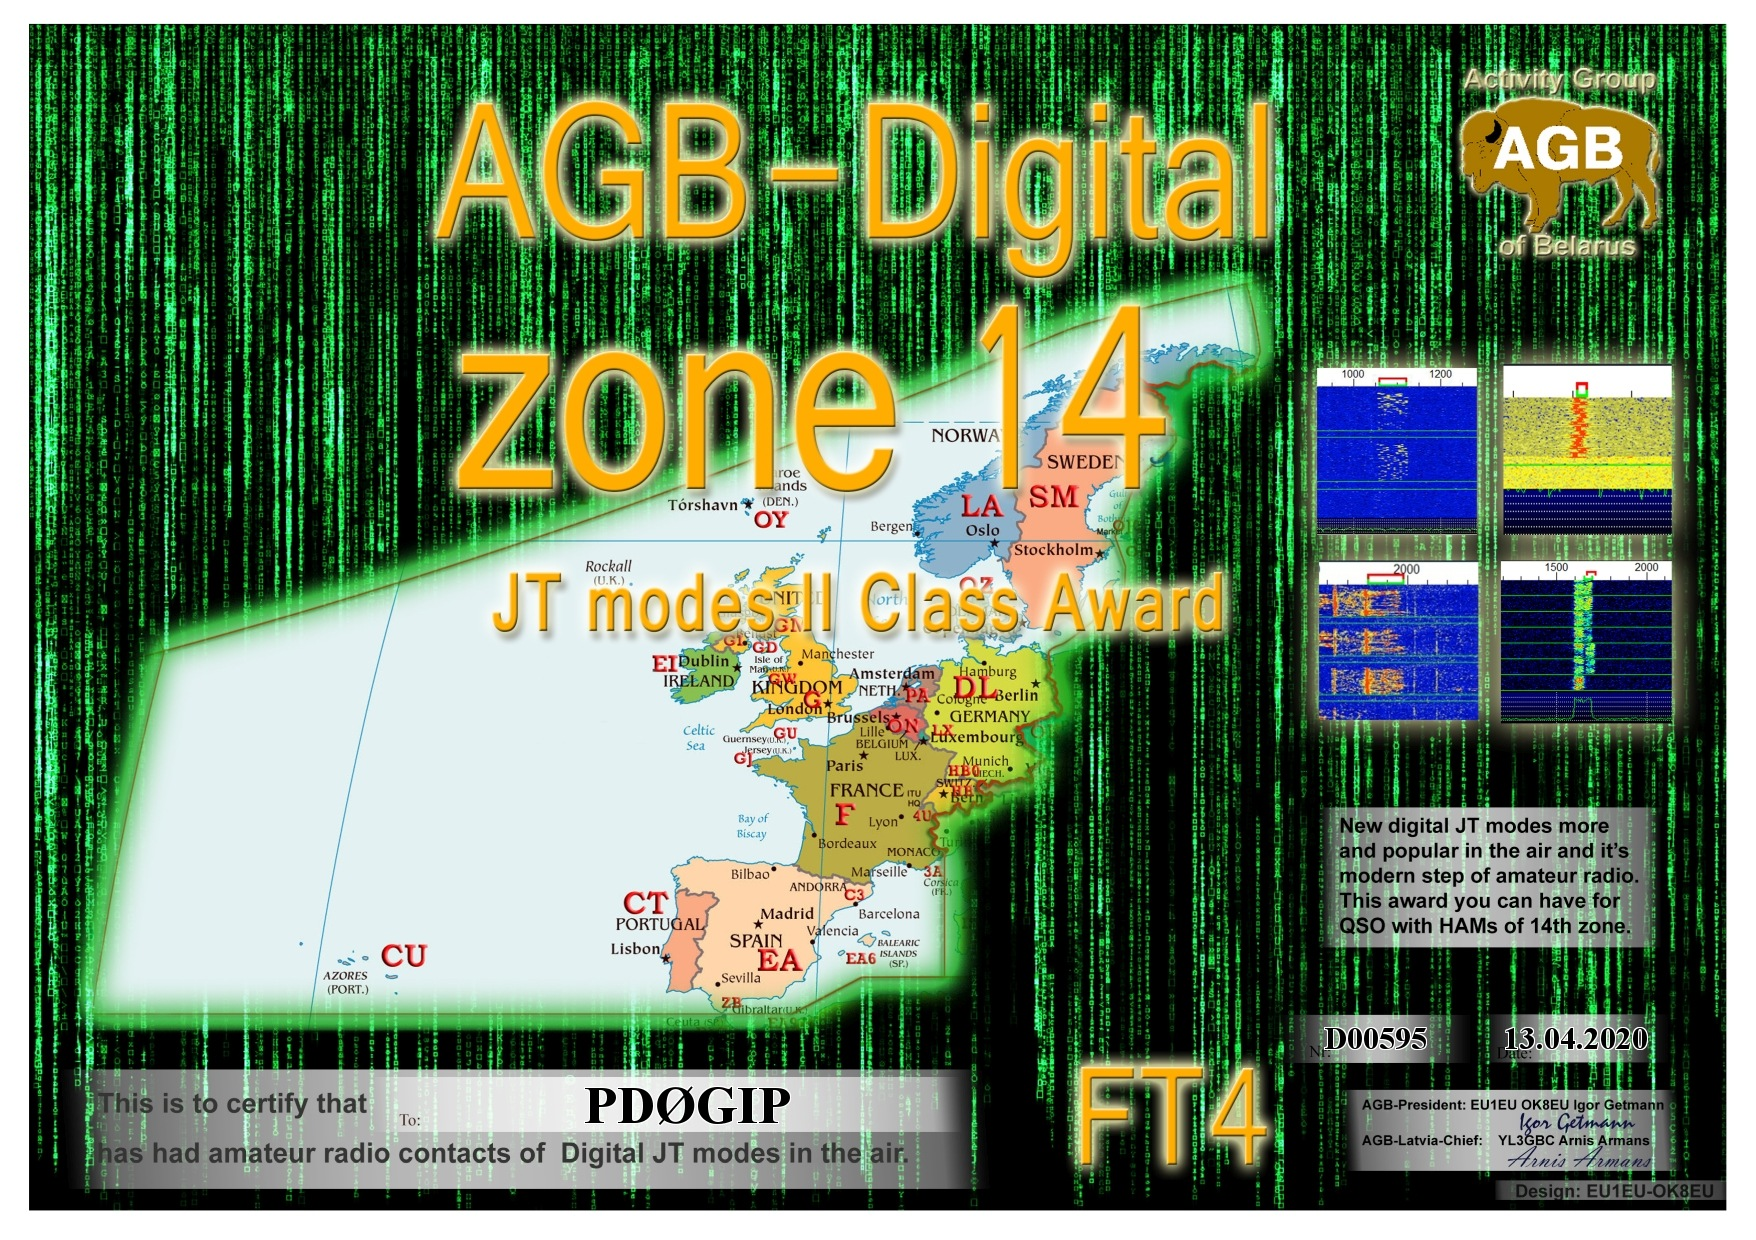 PD0GIP ZONE14 FT4 II AGB